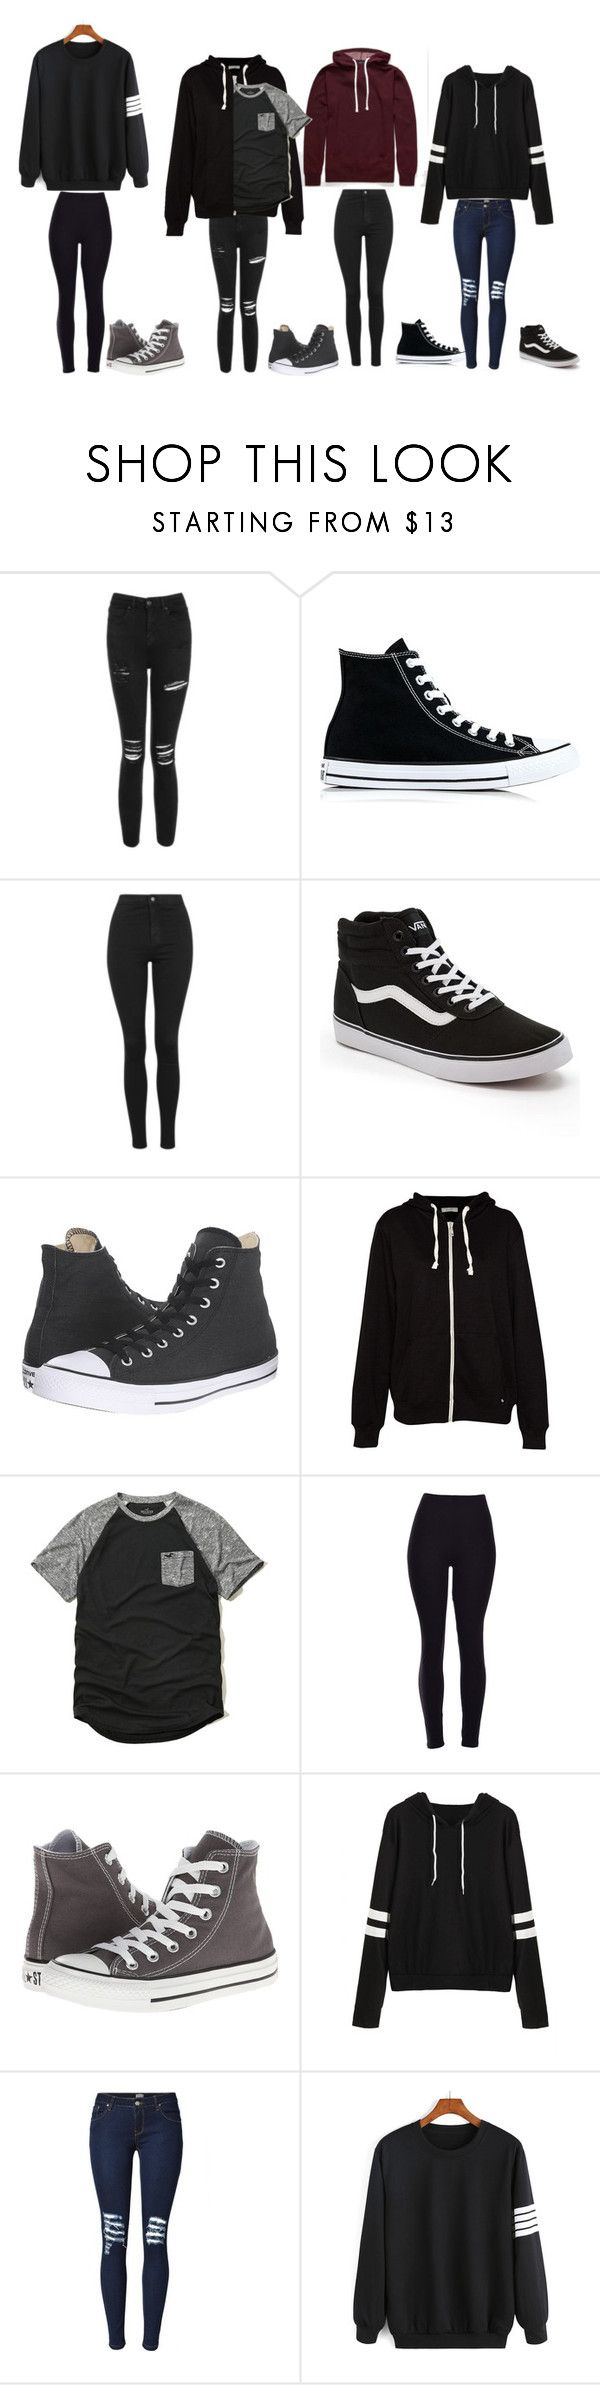 """Untitled #152"" by darksoul7 on Polyvore featuring Topshop, Converse, Vans, Pull&Bear and Hollister Co."